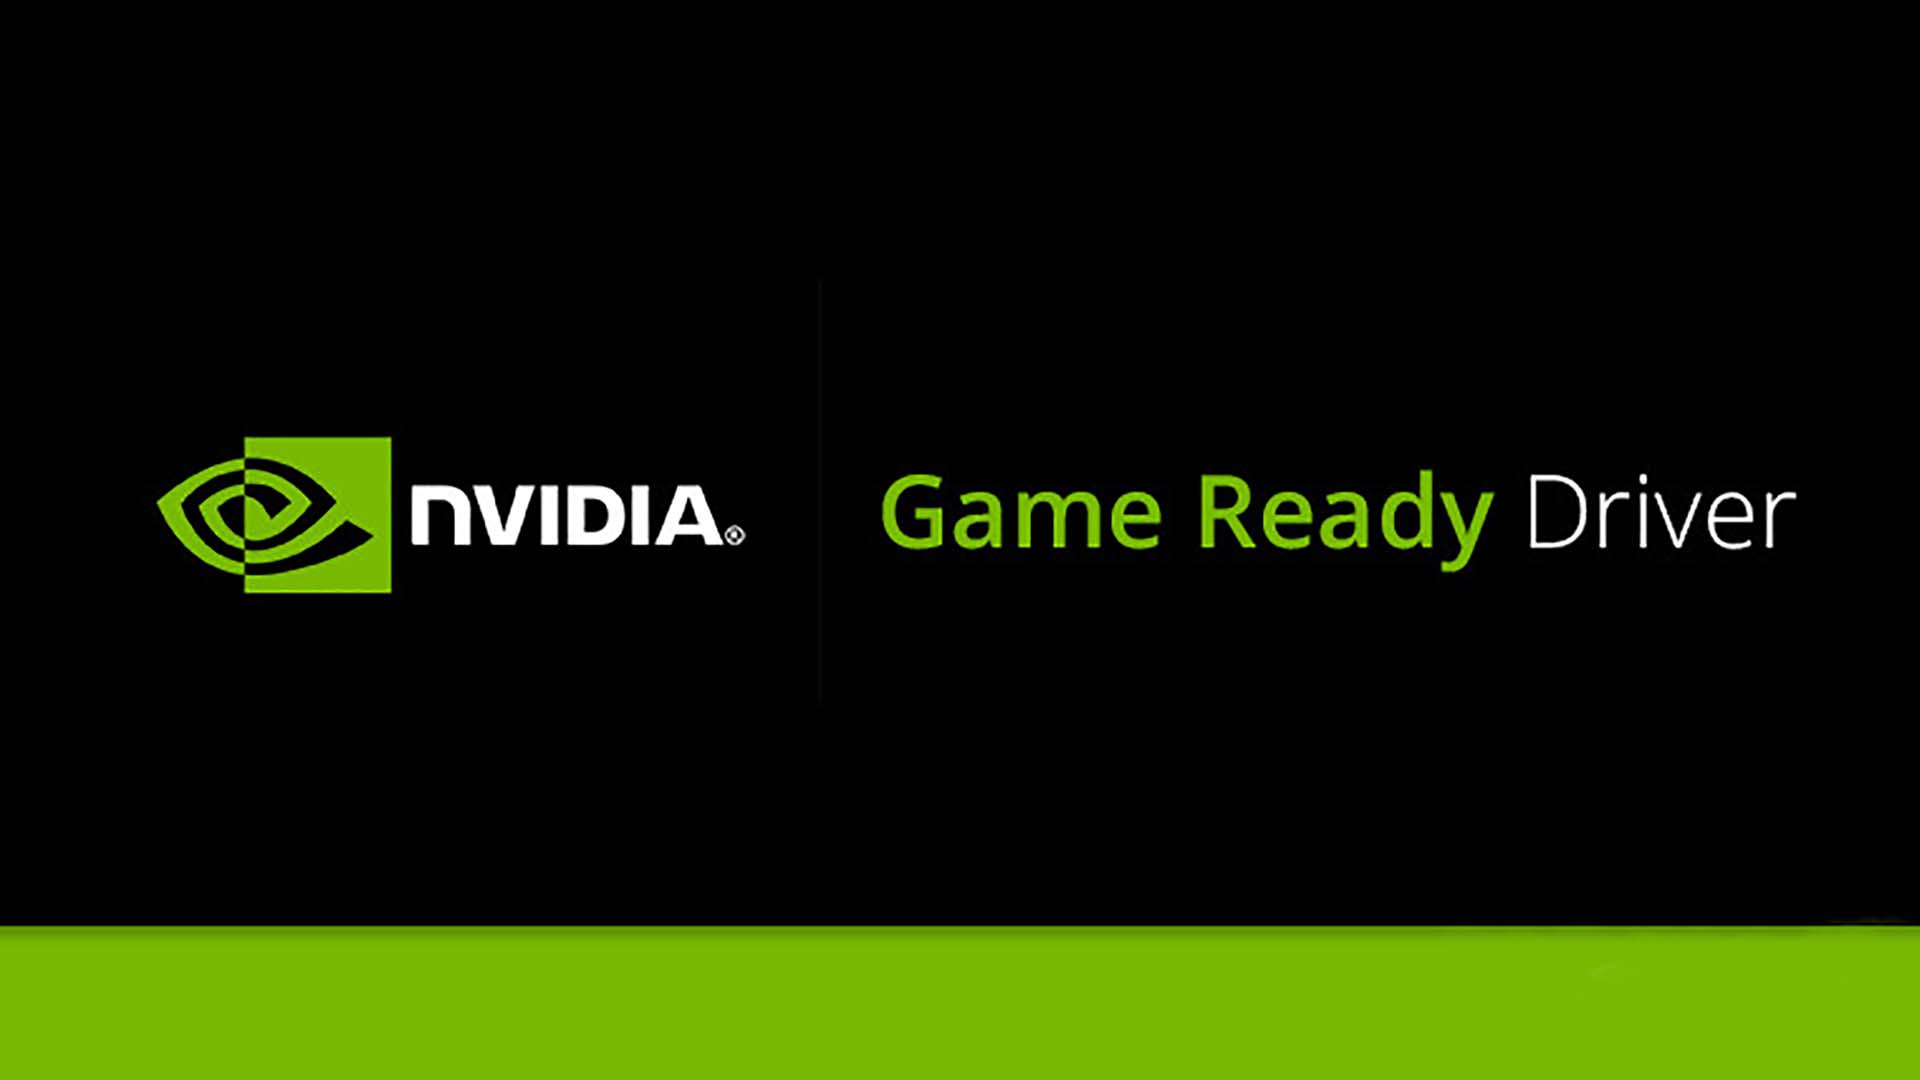 nvidia game ready drivers 436.30